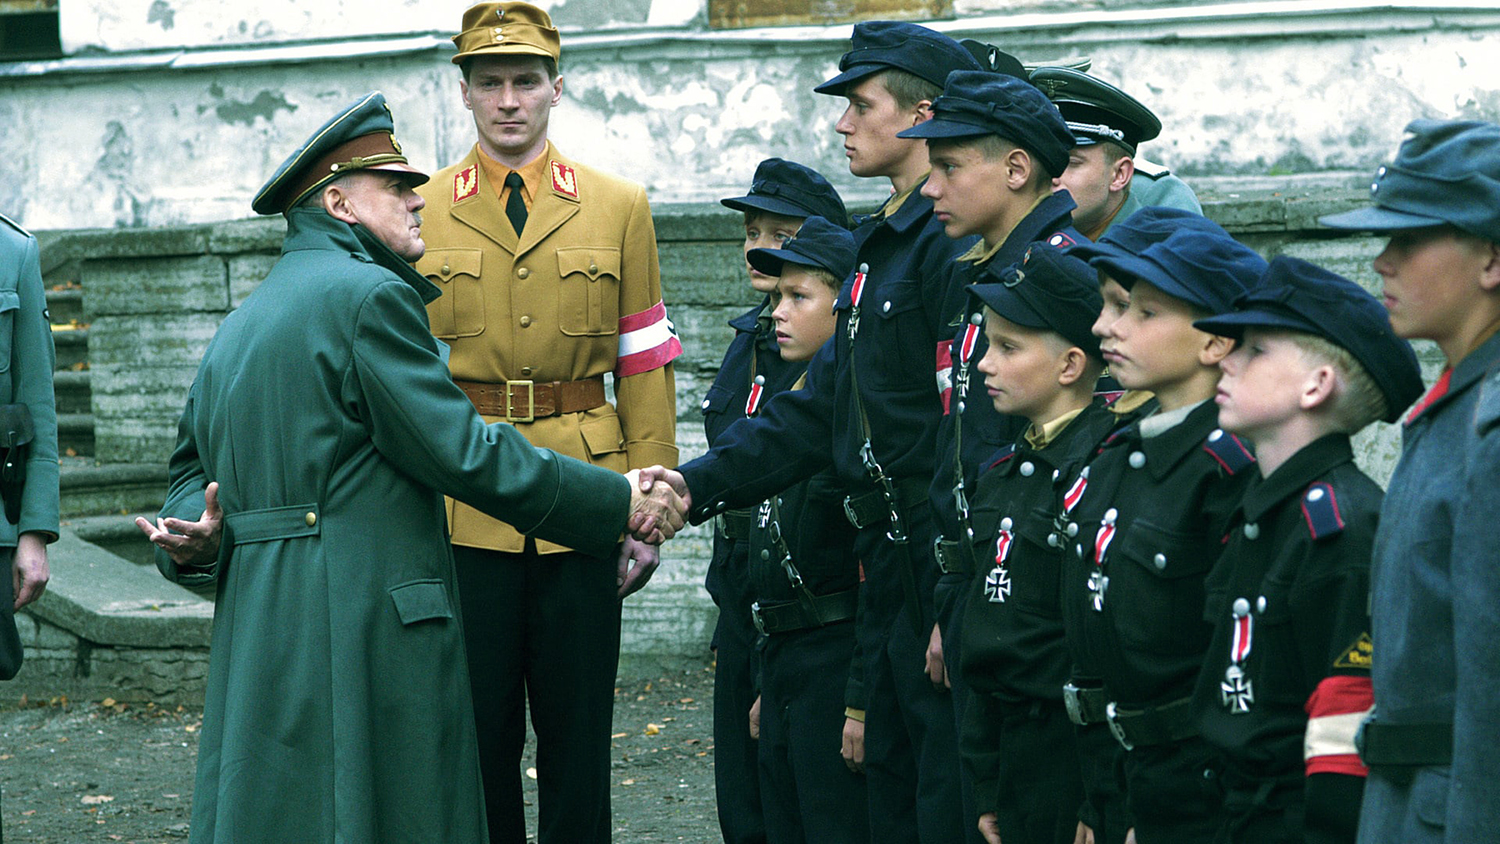 02_hitlerjugend_adolf_hitler_nemetorszag_germany_deutschland_1945_04_20_forras-movieu4_live.jpg